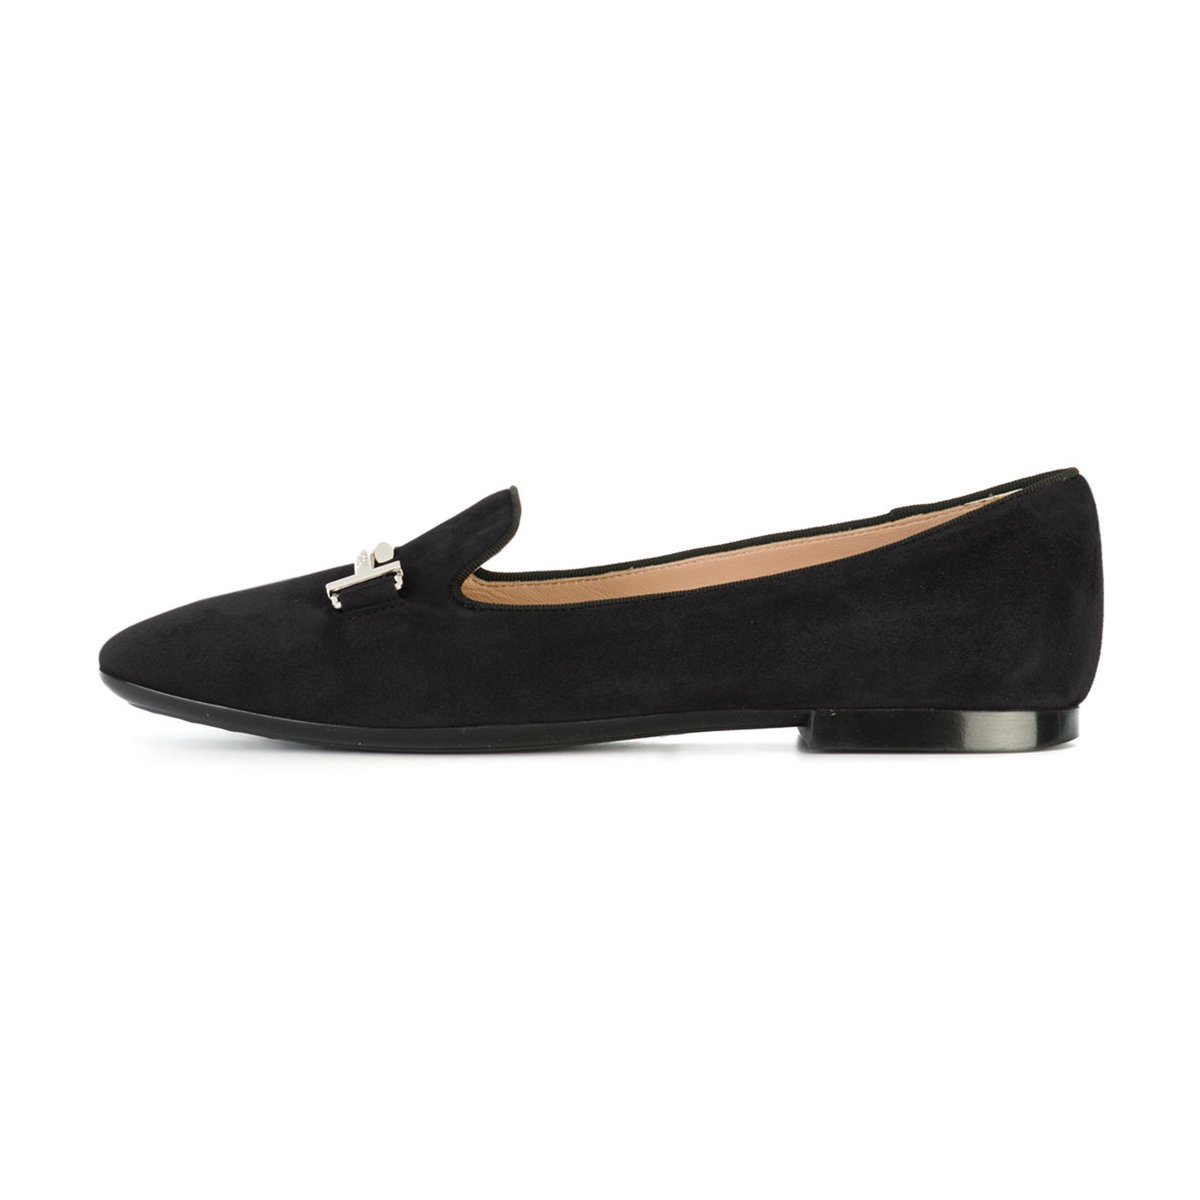 XYD Comfortable Low Heel Slip On Suede Flats Pointed Toe Ballet Loafer Dress Shoes for Women B0794SRH1K 8.5 B(M) US|Black